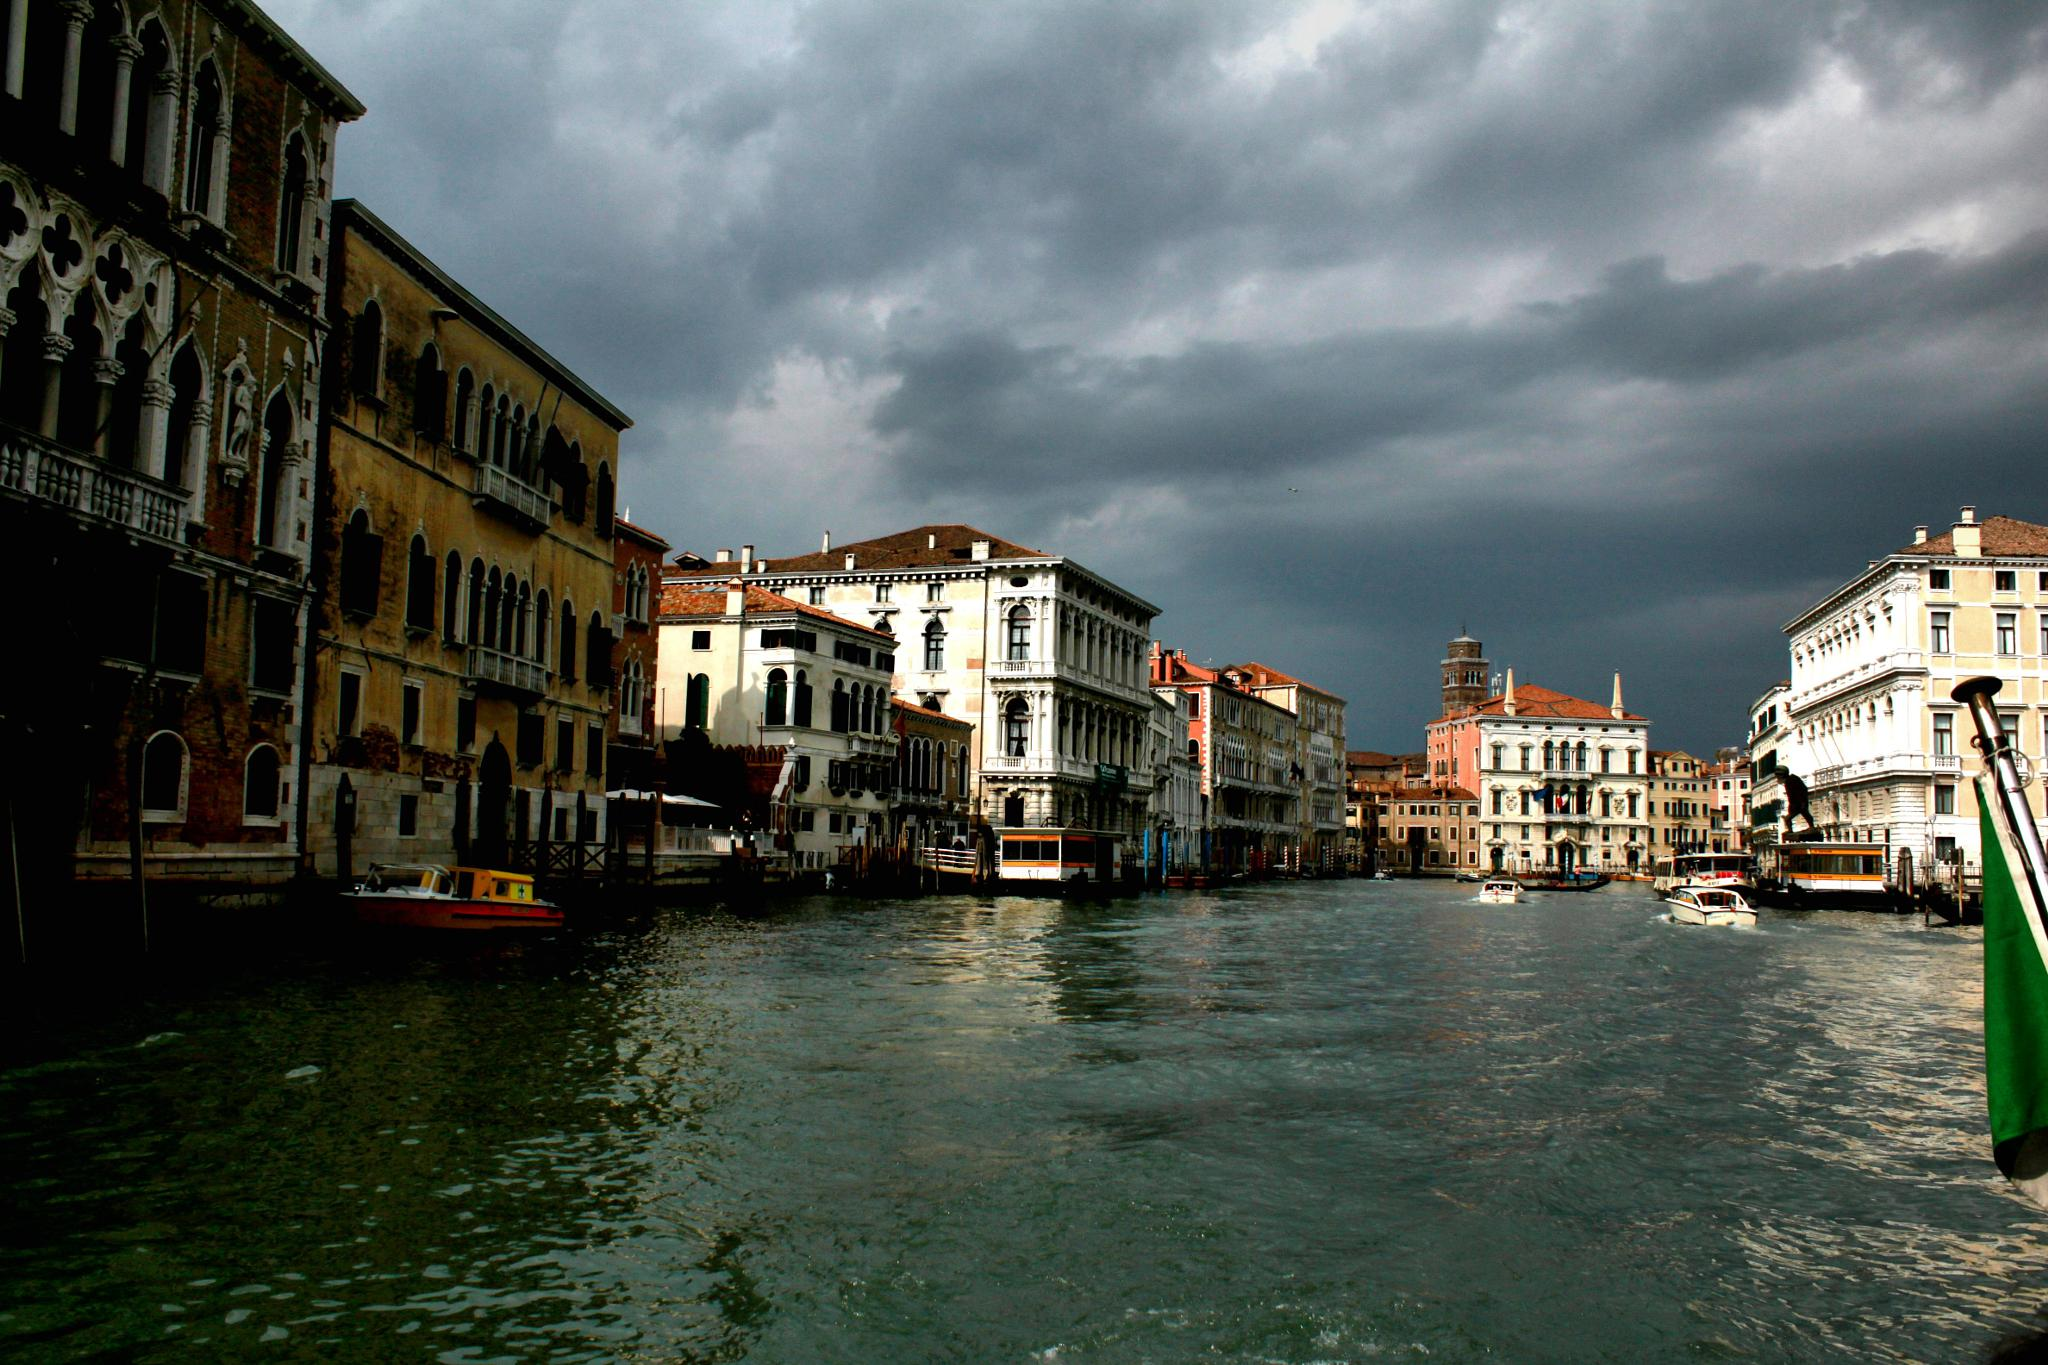 Overcast on the Grand Canal by charles desrosiers